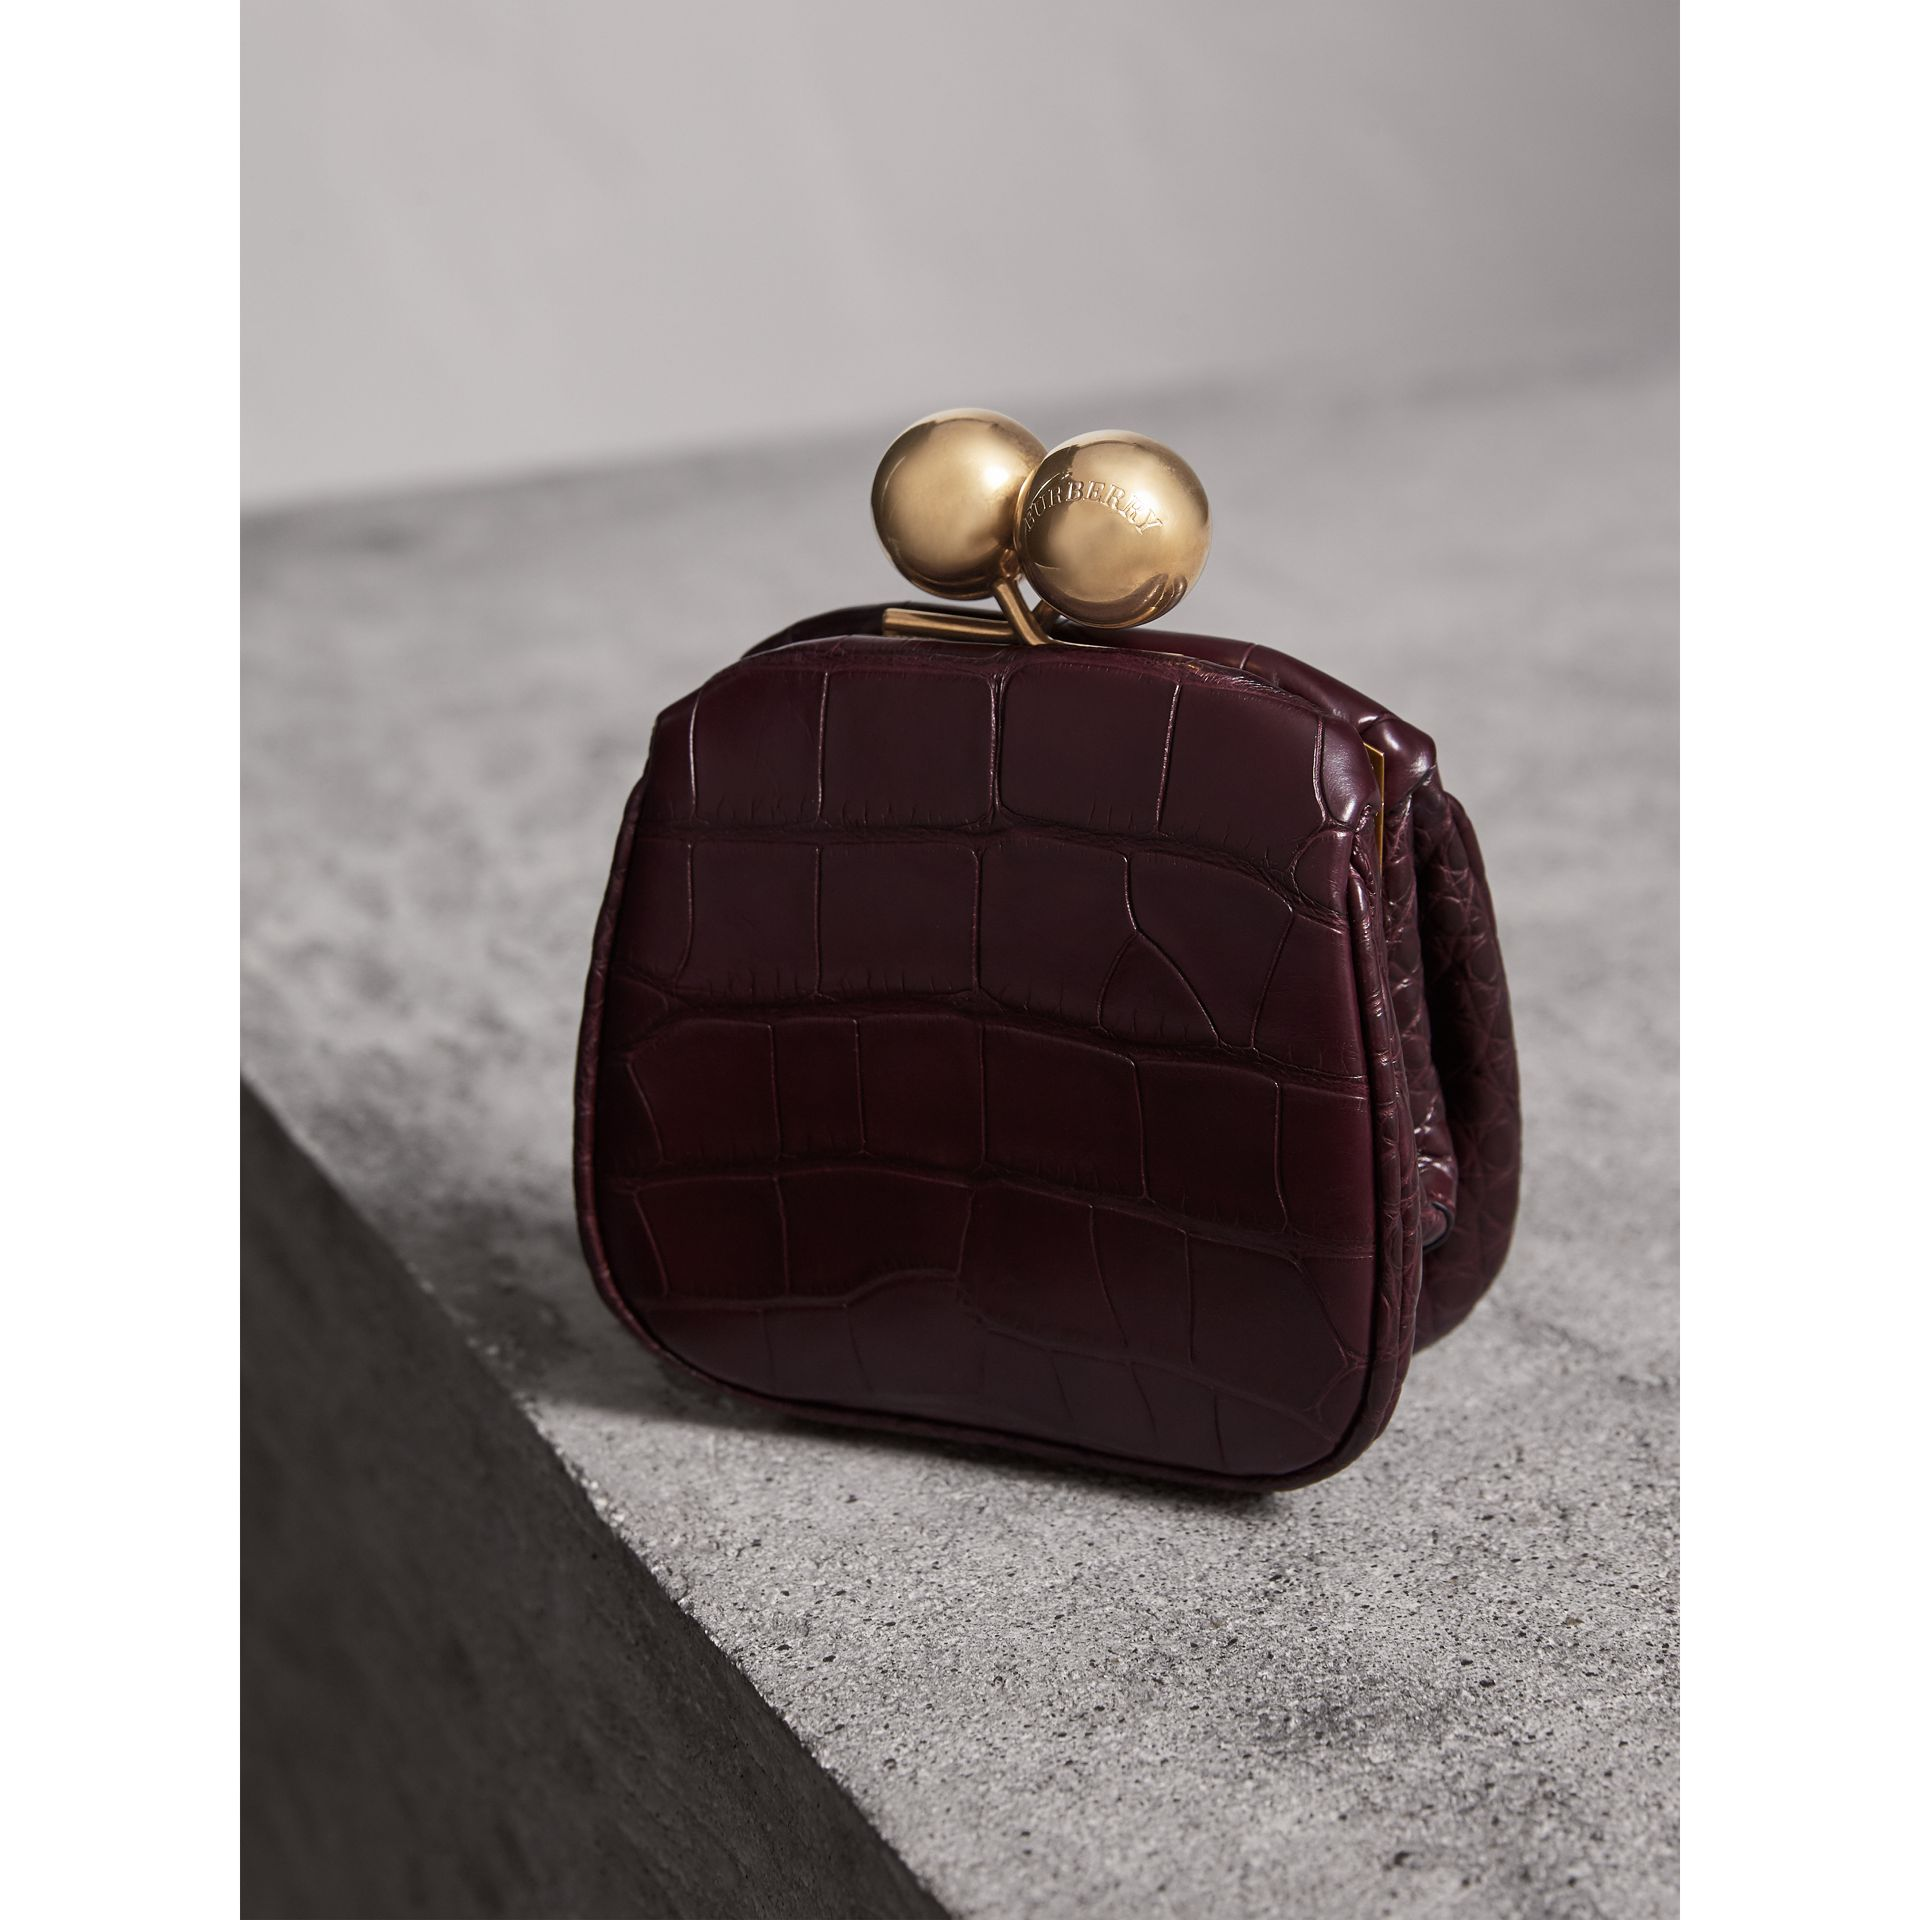 Mini Alligator Metal Frame Clutch Bag in Dark Claret - Women | Burberry - gallery image 2